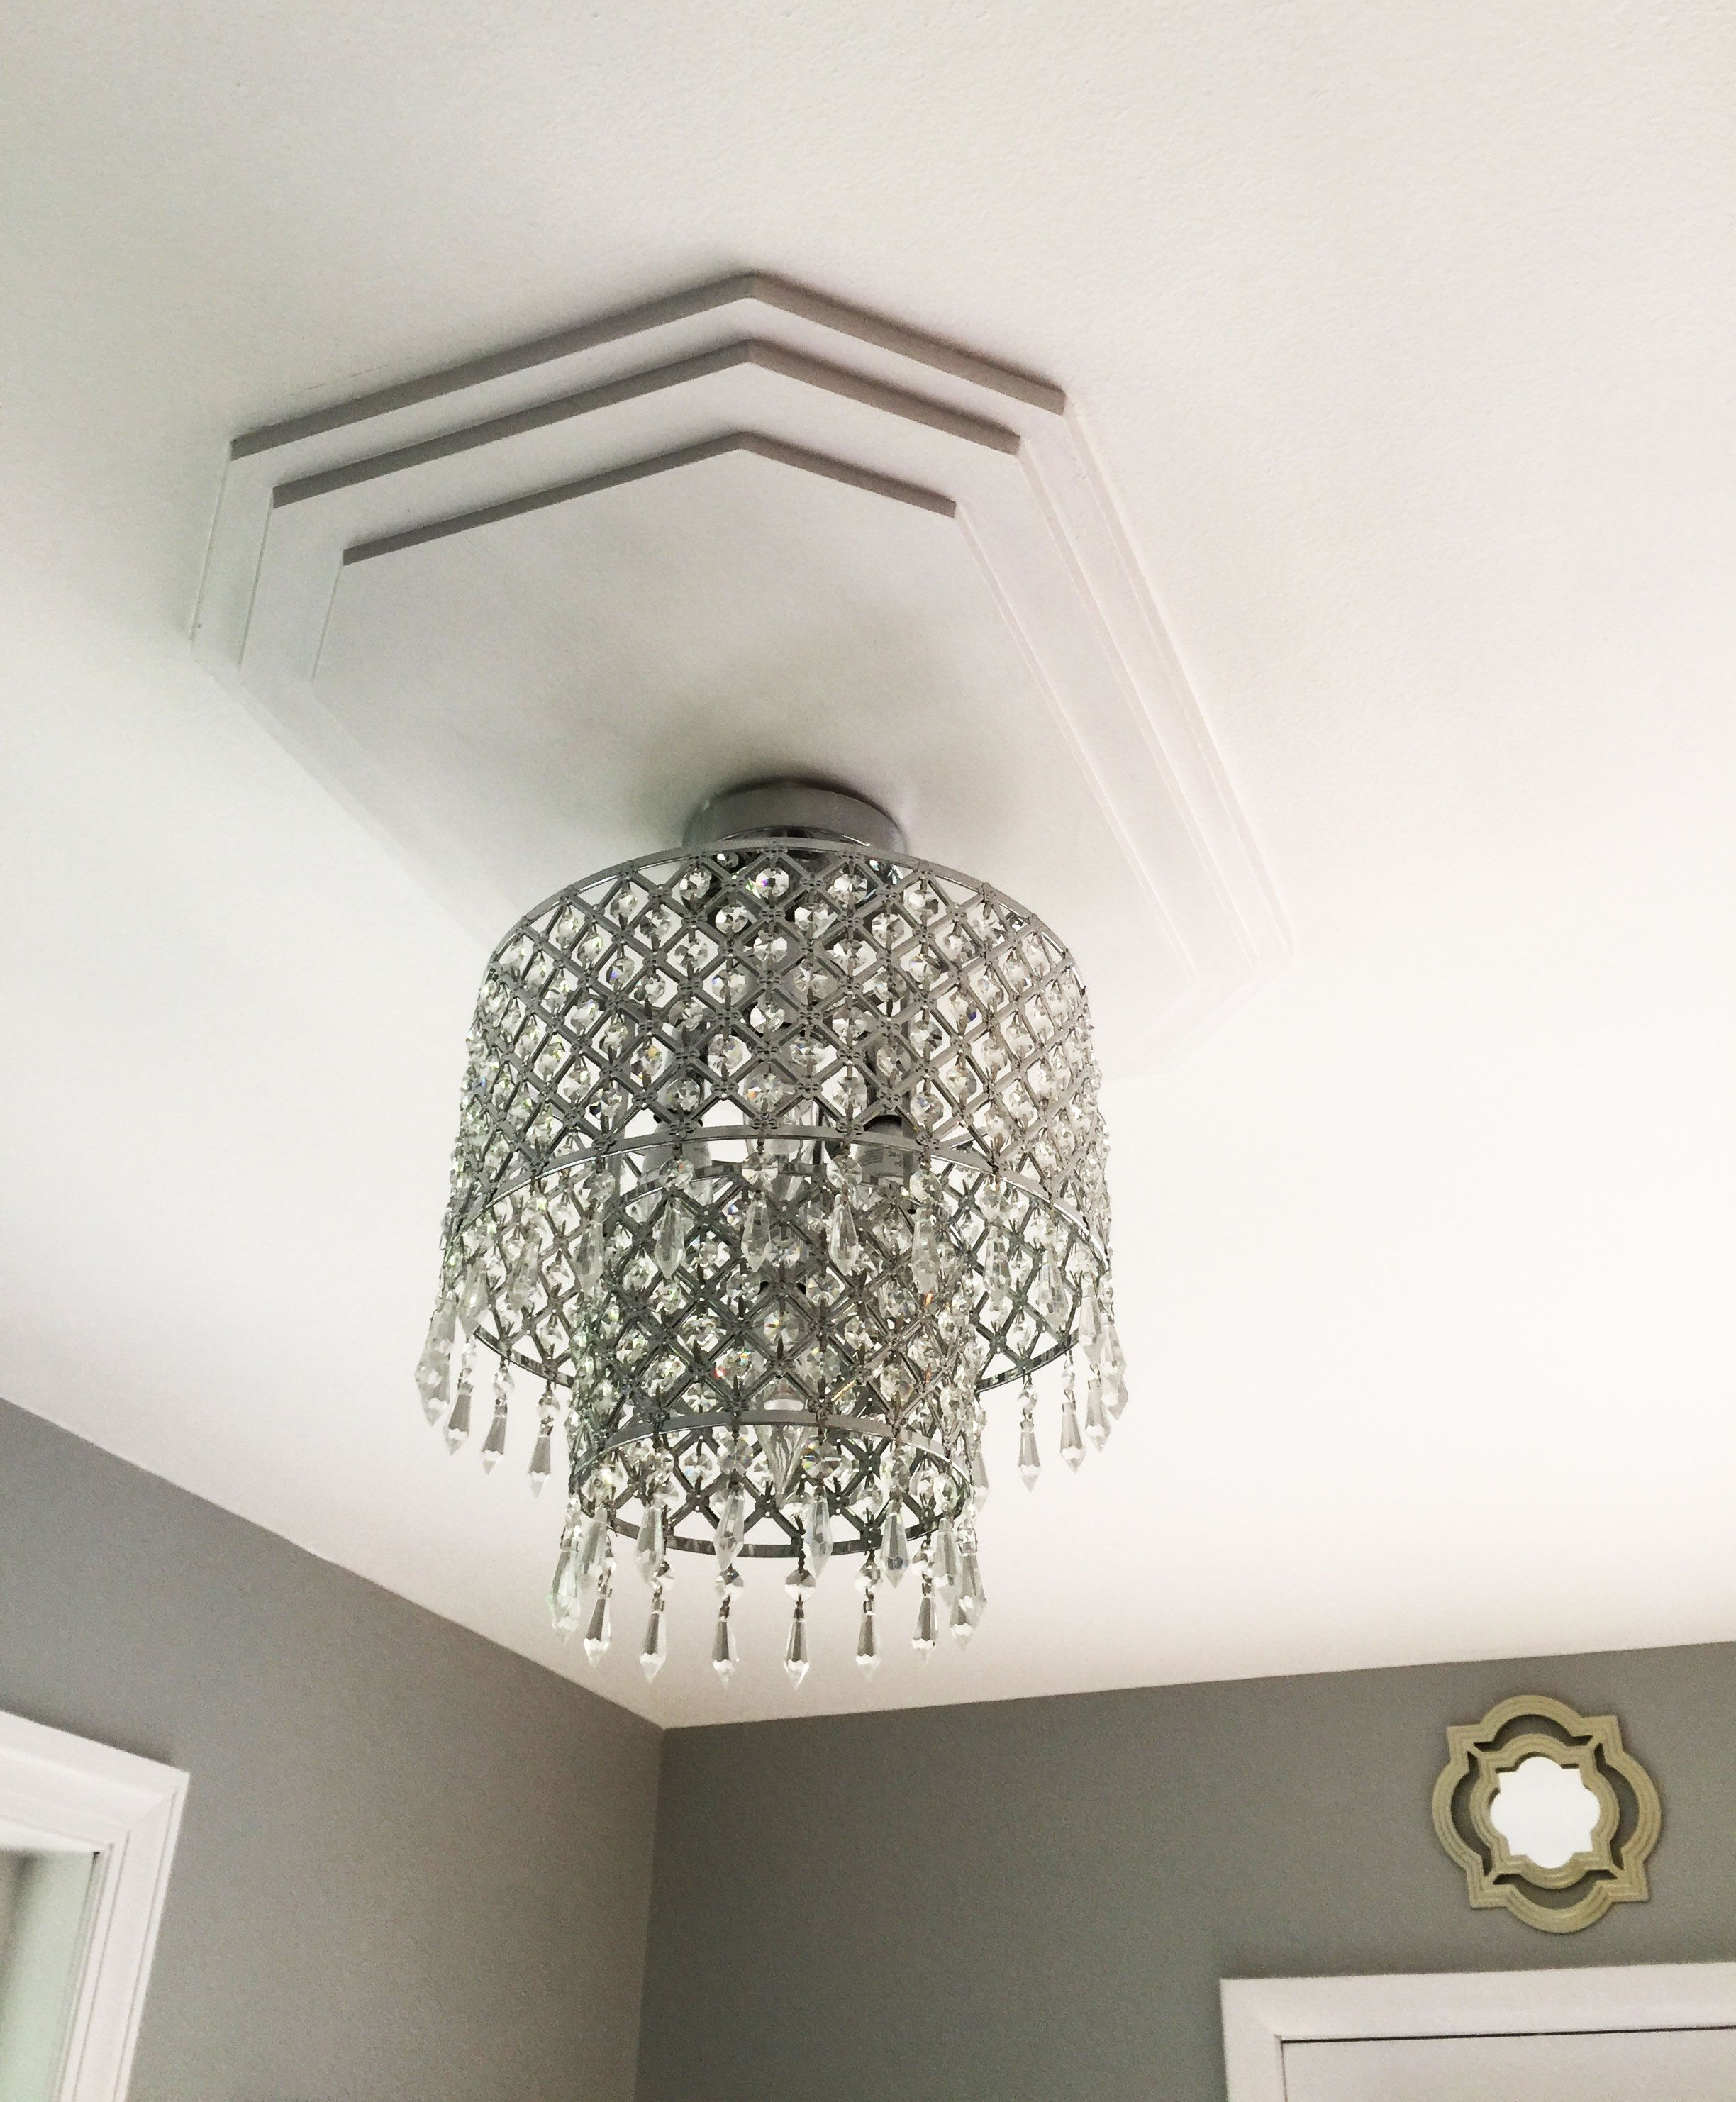 Adding A Square Ceiling Medallion Is A Great Contrast To An Ornate